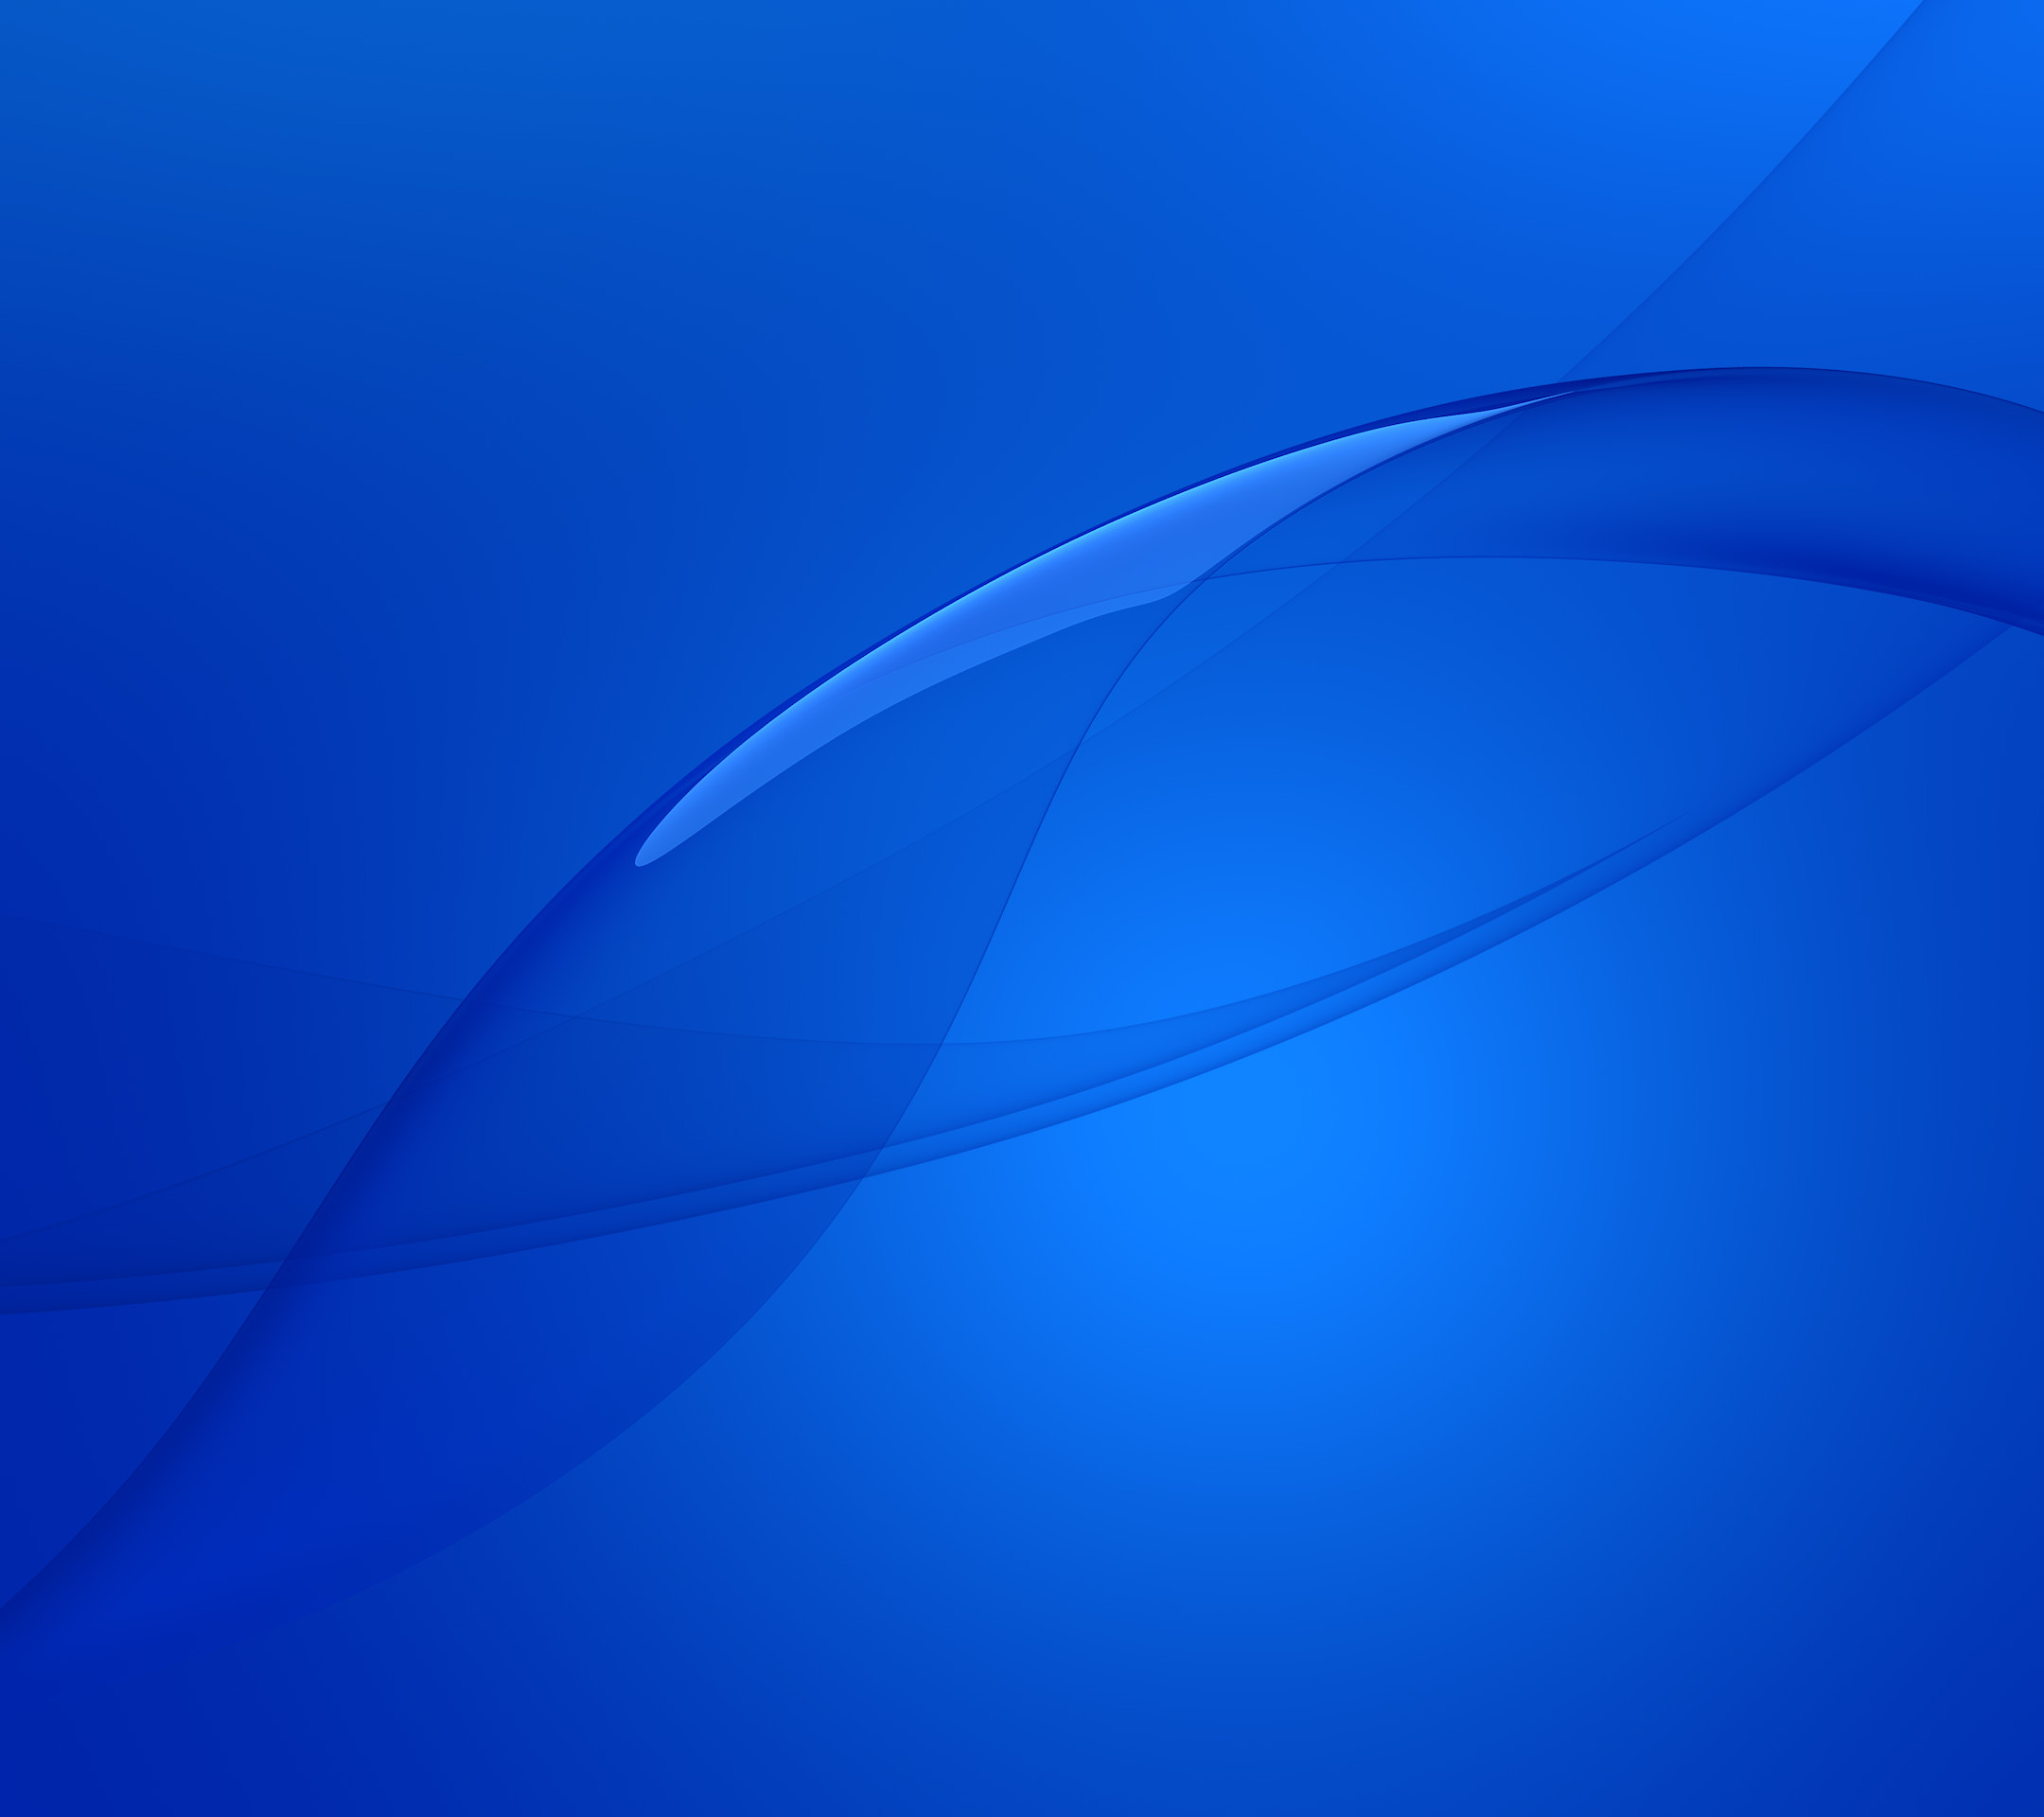 2160x1920 Sony Xperia Z3 wallpapers available for download | TalkAndroid.com